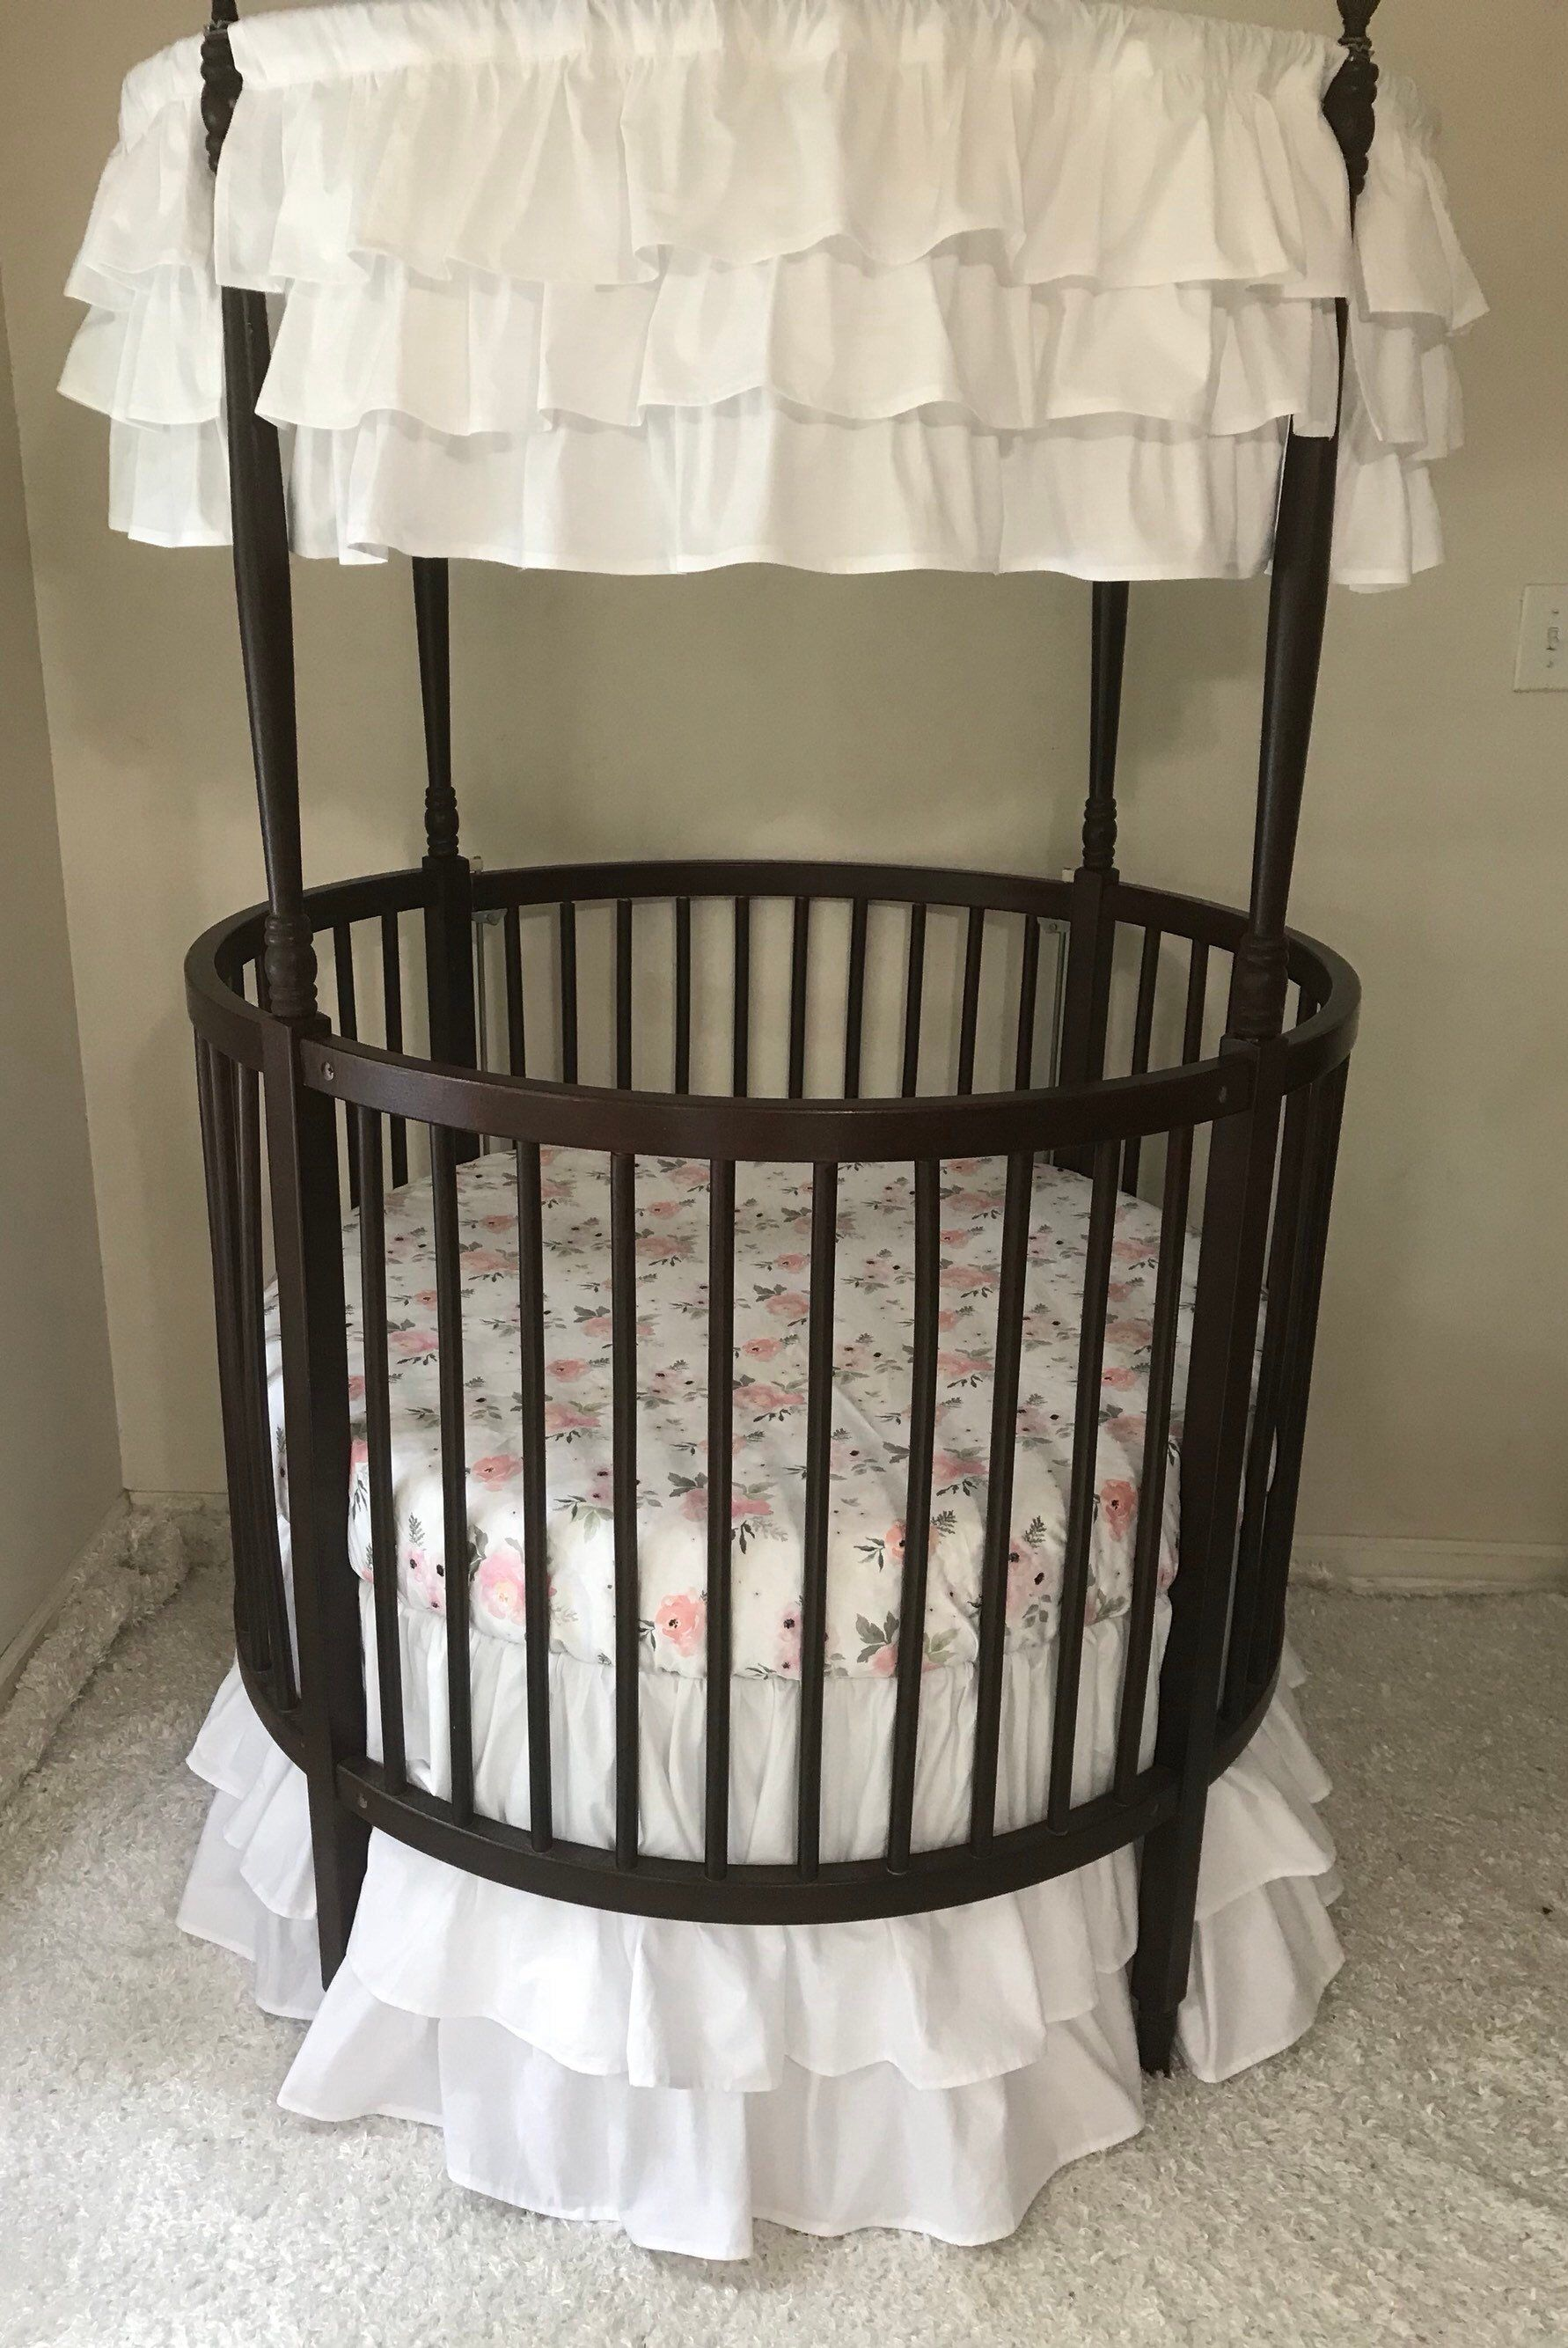 Round Crib Bedding Set White Pink And Gray Watercolor Floral